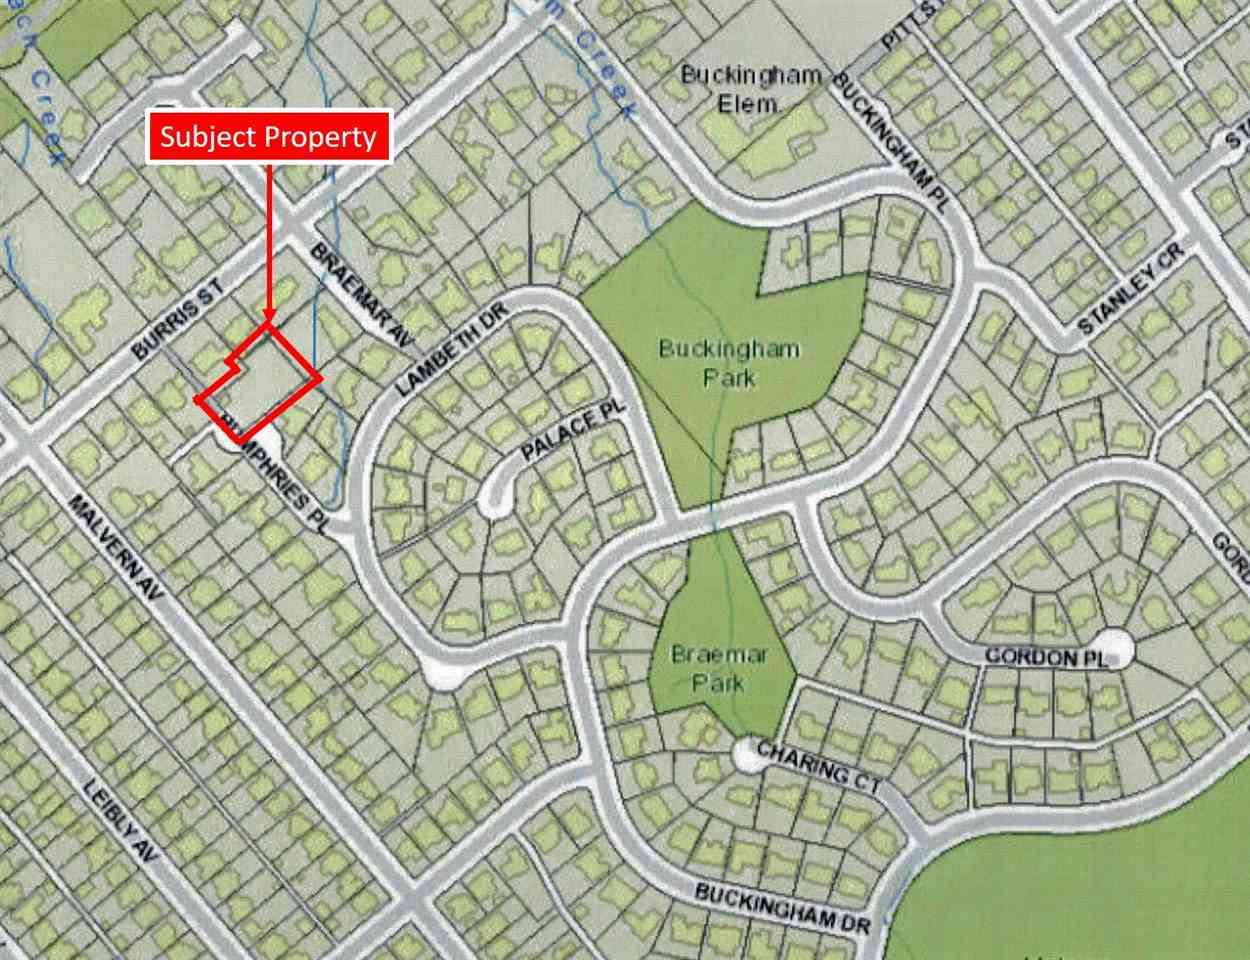 RARE & UNIQUE OPPORTUNITY! The existing property 6000 Humphries is 19,222 sqft, and is one-step away to be sub-divided, into 2 lots of approx 9,611 sqft, to build homes of up to 5,766 sq ft on each lot. This mls listing would be for one of the lots after subdivision. A rare opportunity in Burnaby's most sought after & prestigious Buckingham Heights neighbourhood!  Property is fully prepared & ready to build on with services for electrical, water, and drainage services in place with engineered retaining walls, high grade secured aluminum fencing for added privacy. Situated off a quiet private cul-de-sac, this elevated property lends itself to a North Westernly panoramic mountain vista. Call for more details.